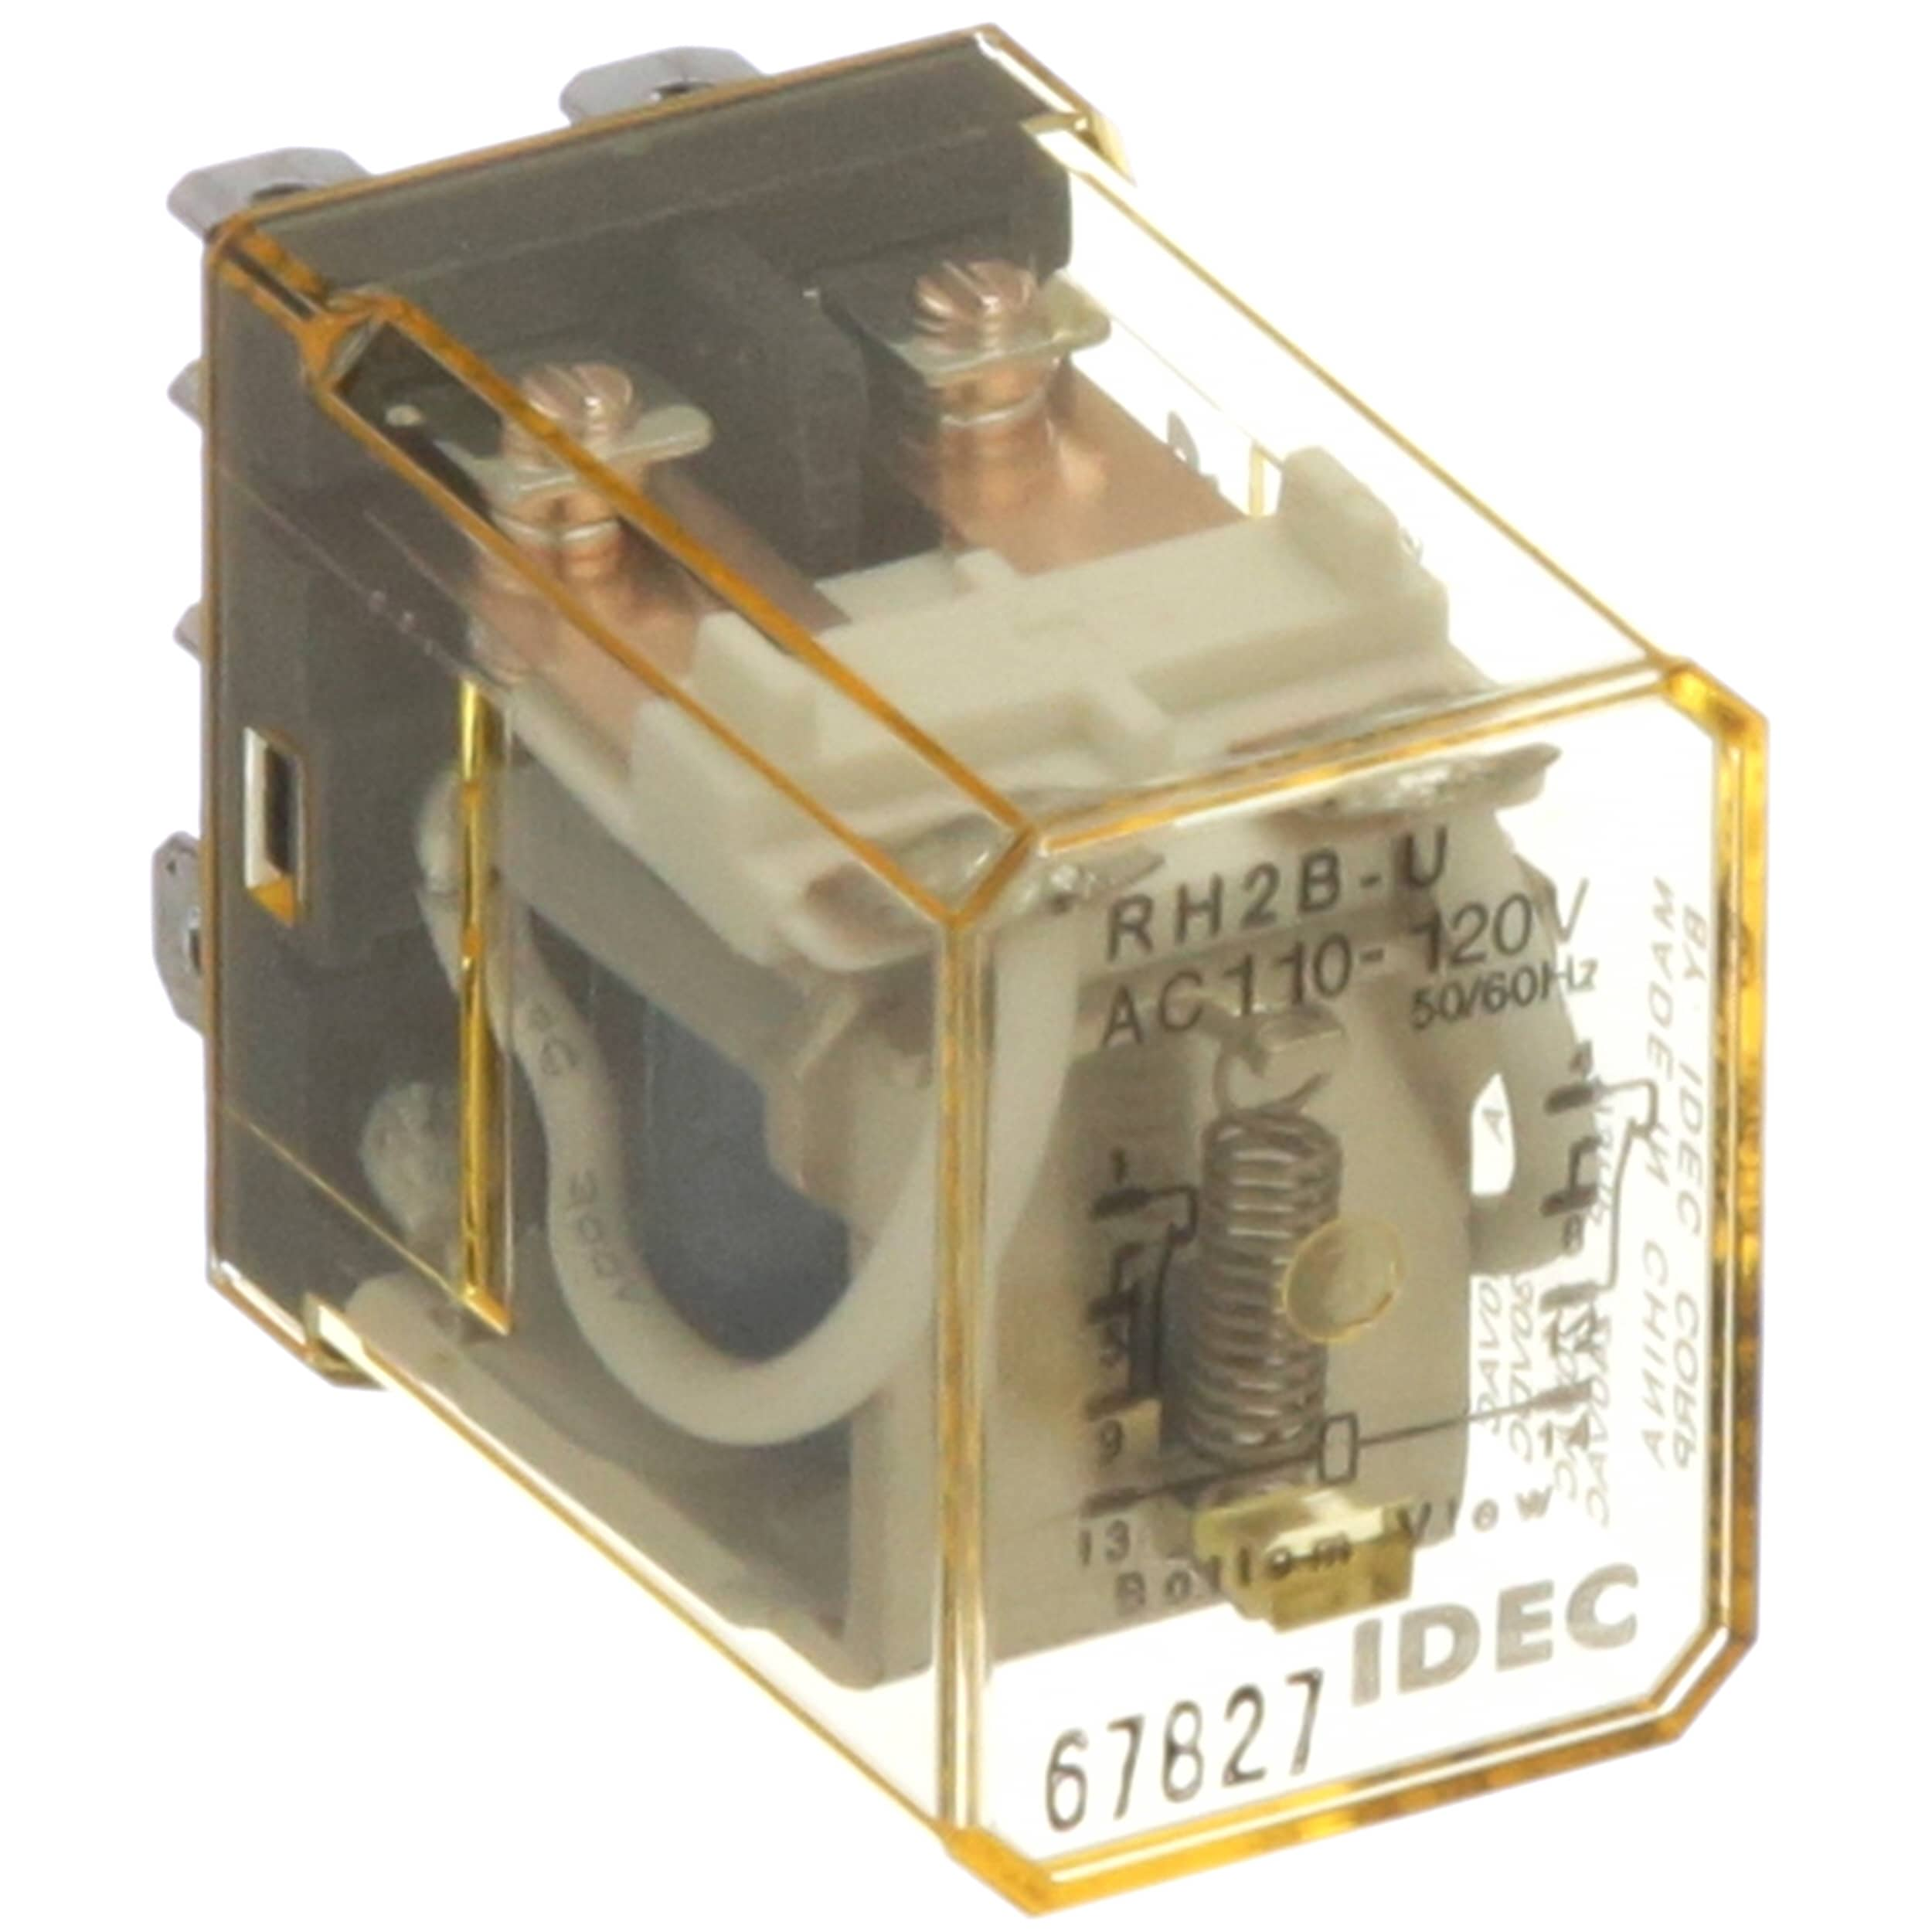 WRG-2891] Rh2b U Relay Wiring Diagram on